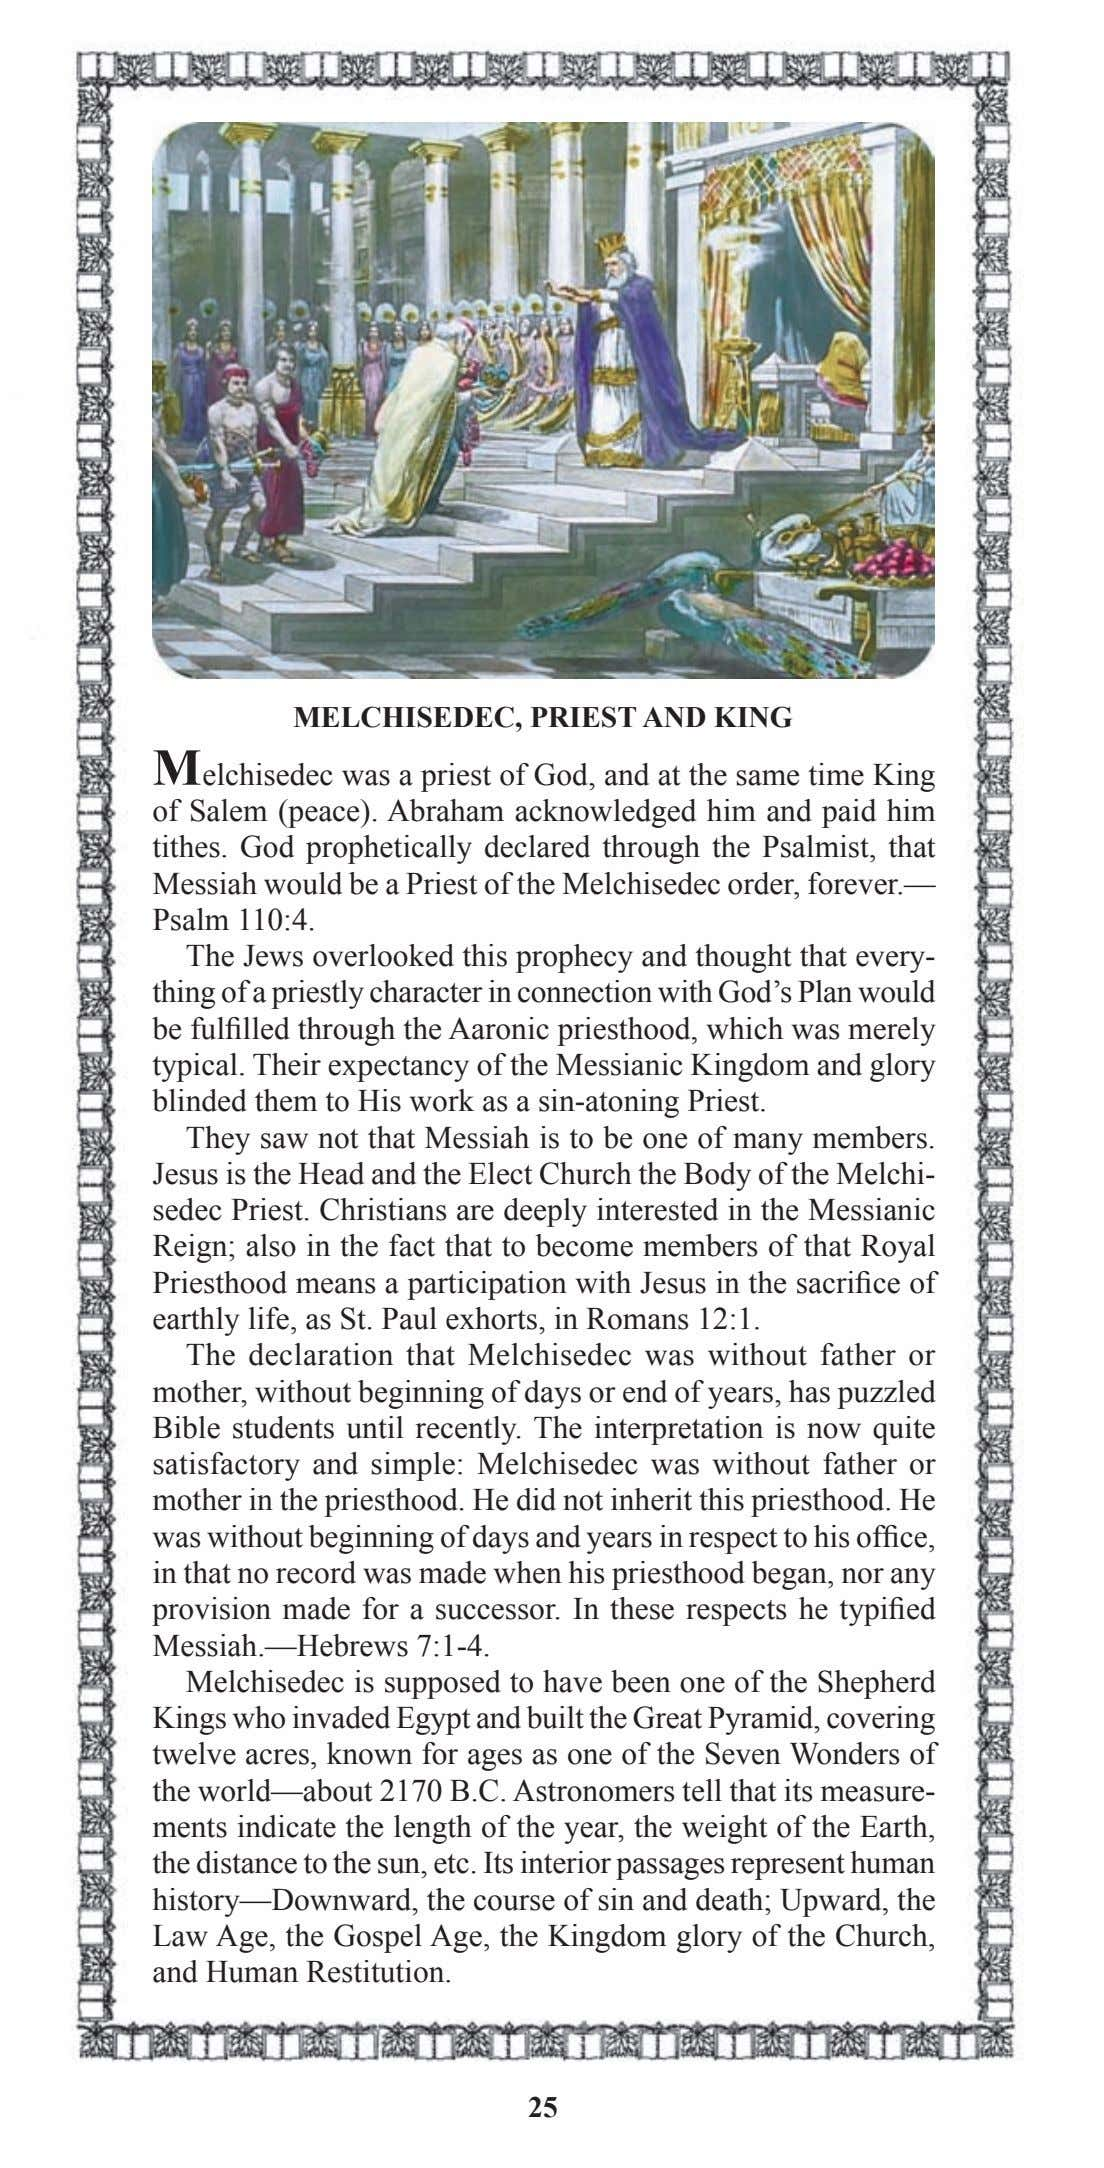 MELCHISEDEC, PRIEST AND KING Melchisedec was a priest of God, and at the same time